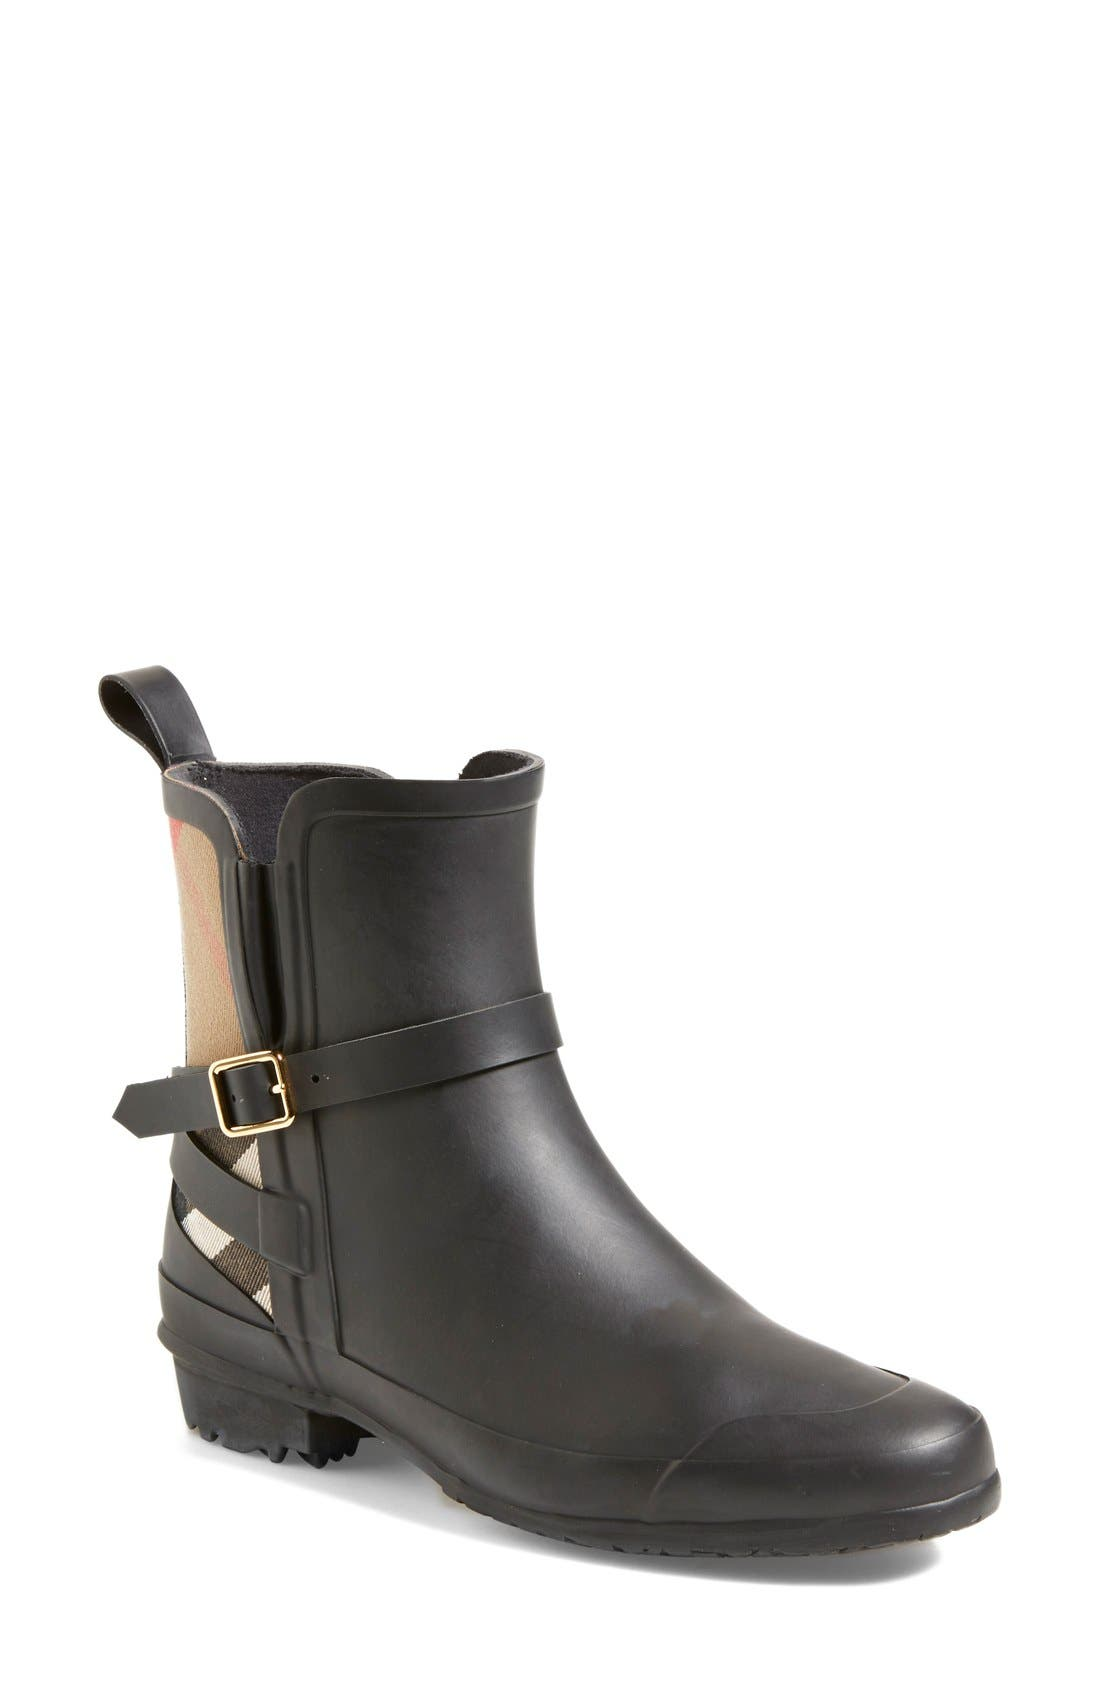 Main Image - Burberry 'Riddlestone' Rain Boot (Women)